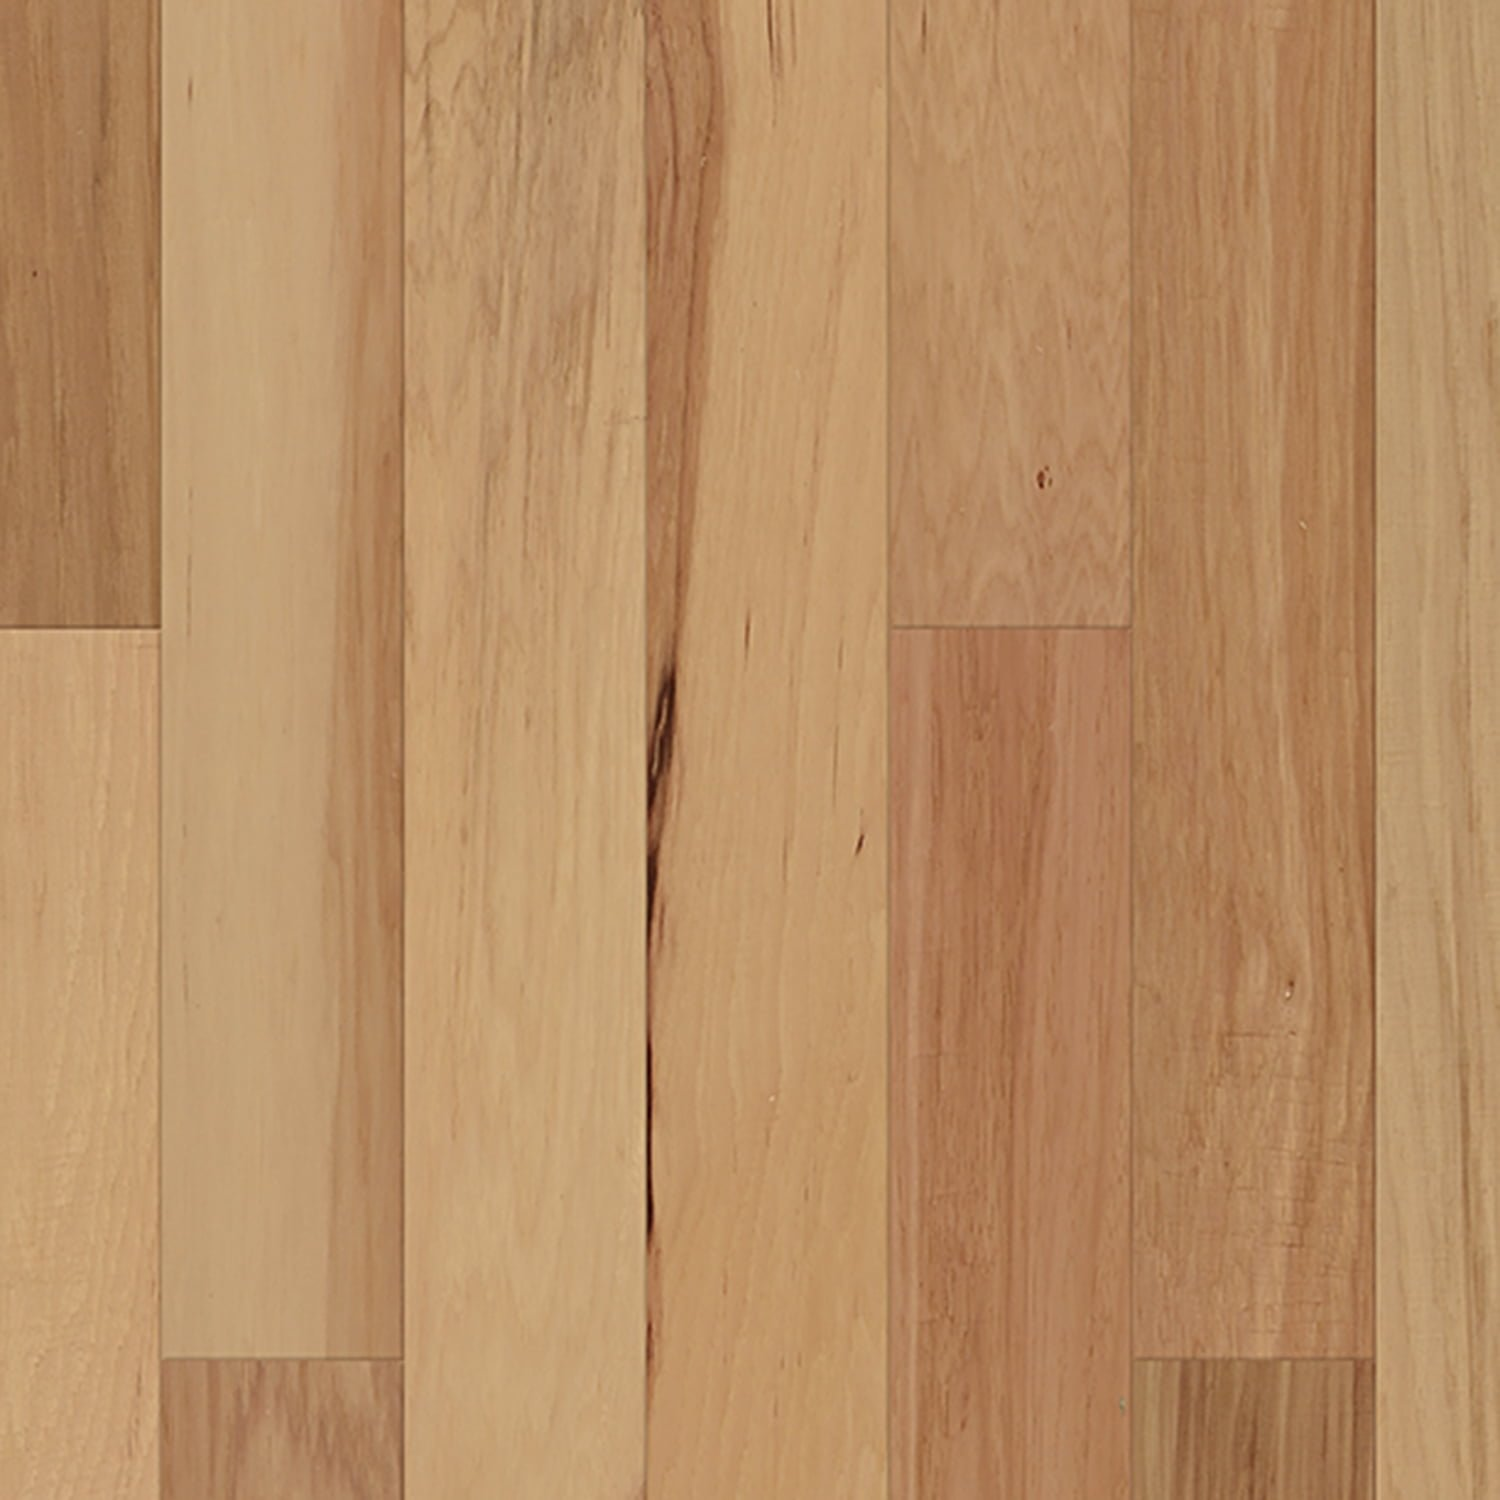 Kraus Flooring Halton Hickory Collection Natural Country